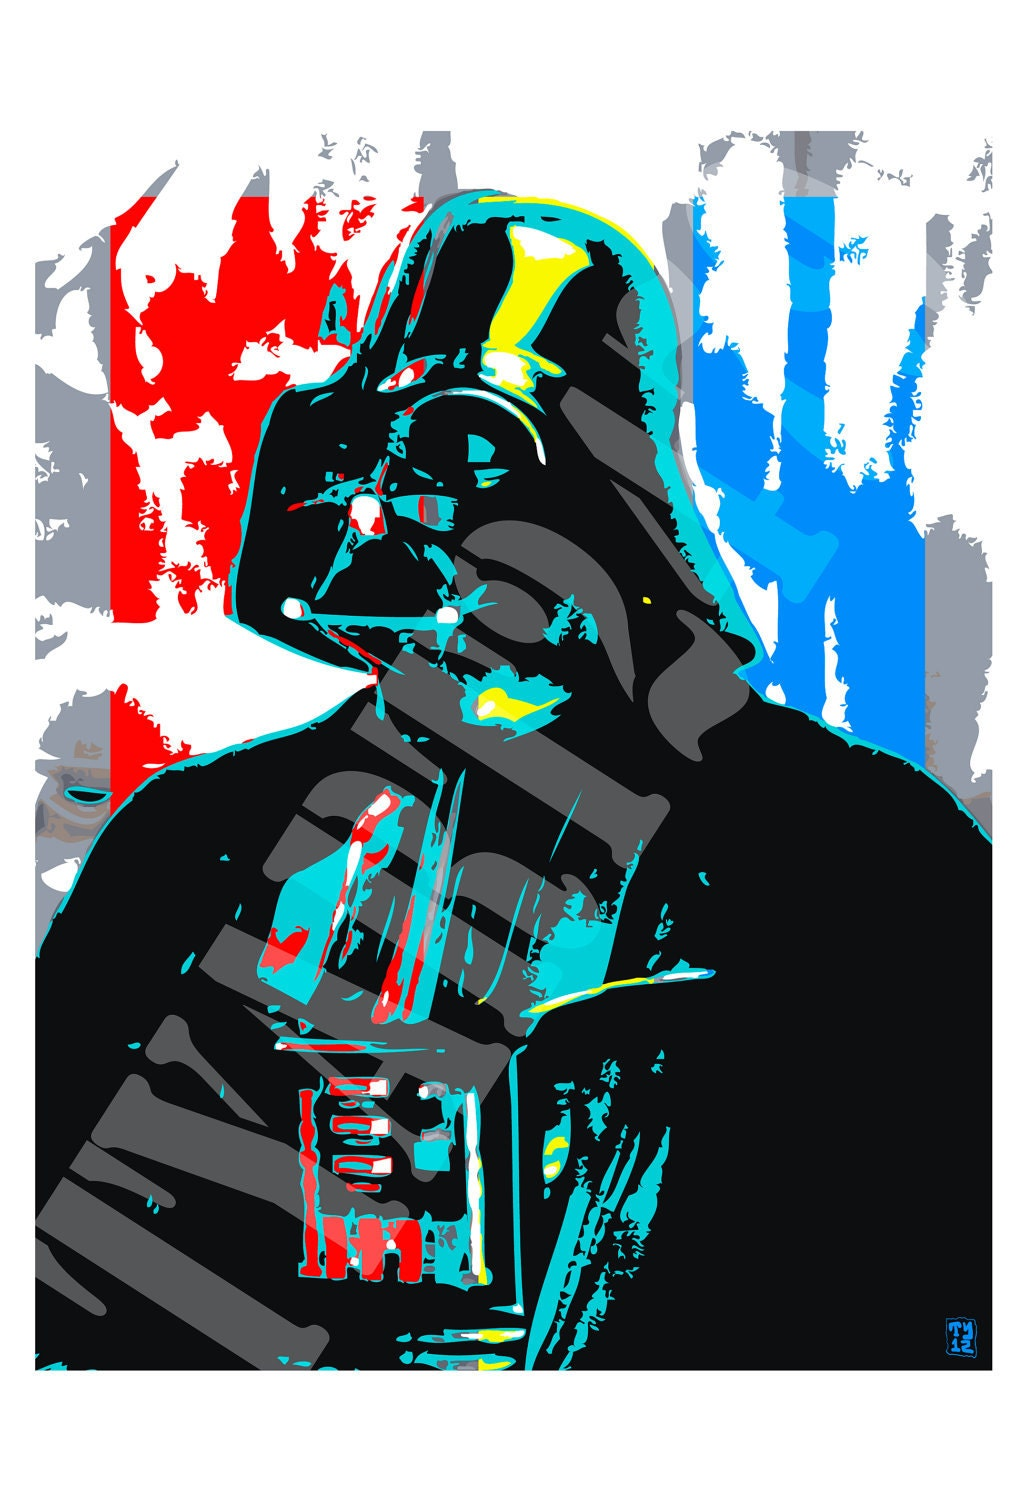 darth vader star wars pop art poster print by tyart2479 on etsy. Black Bedroom Furniture Sets. Home Design Ideas